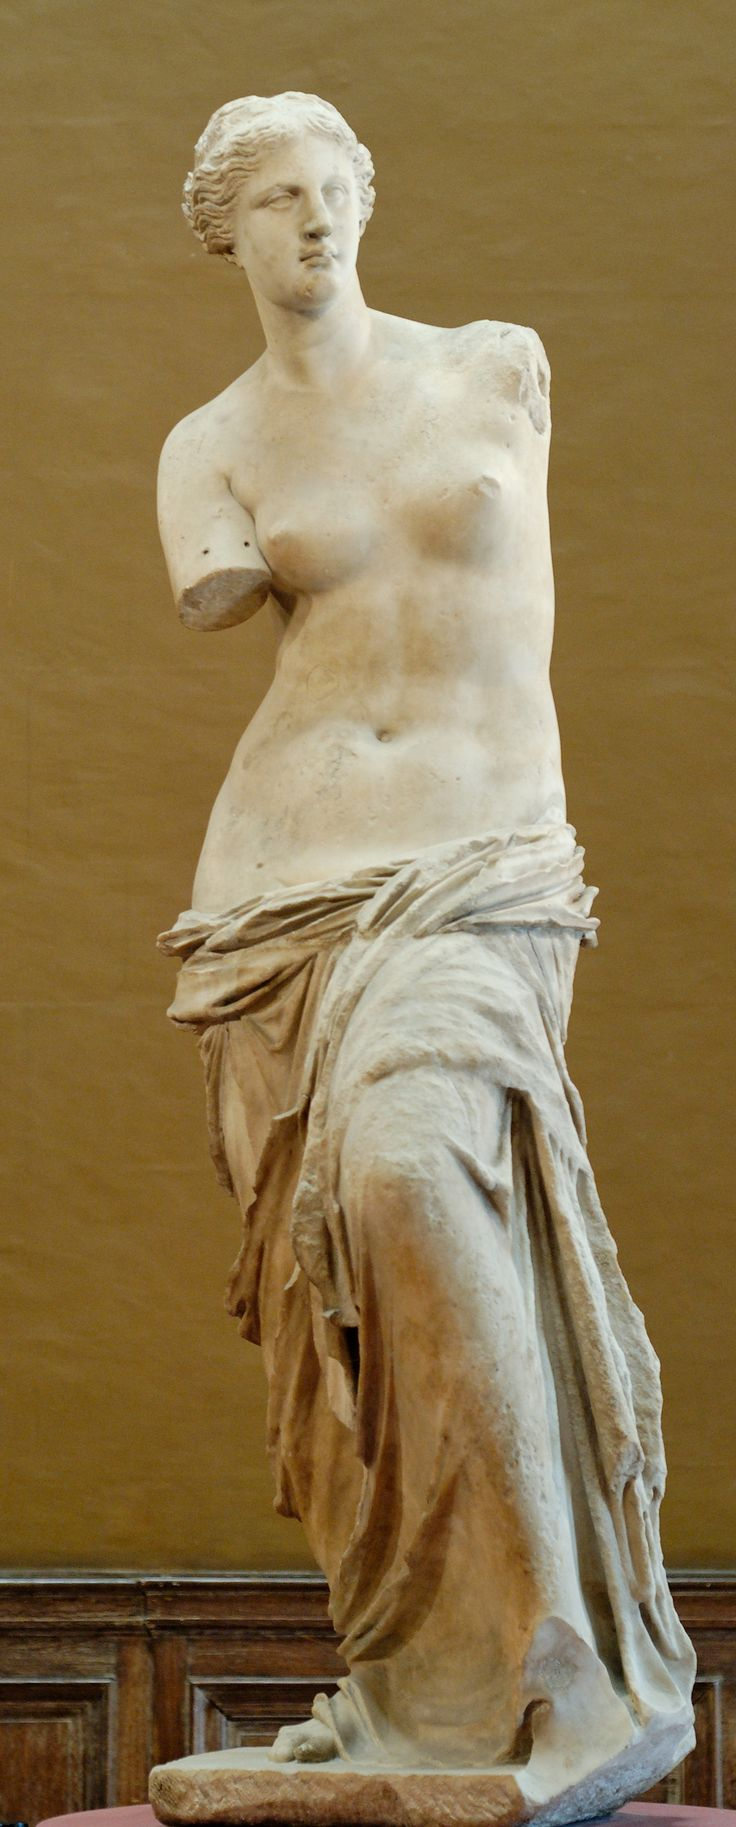 Various portrayals (photographs, reproductions) of the ancient Greek statue Venus de Milo have been banned and censored both due to the fact that she is partially nude and her lack of arms.